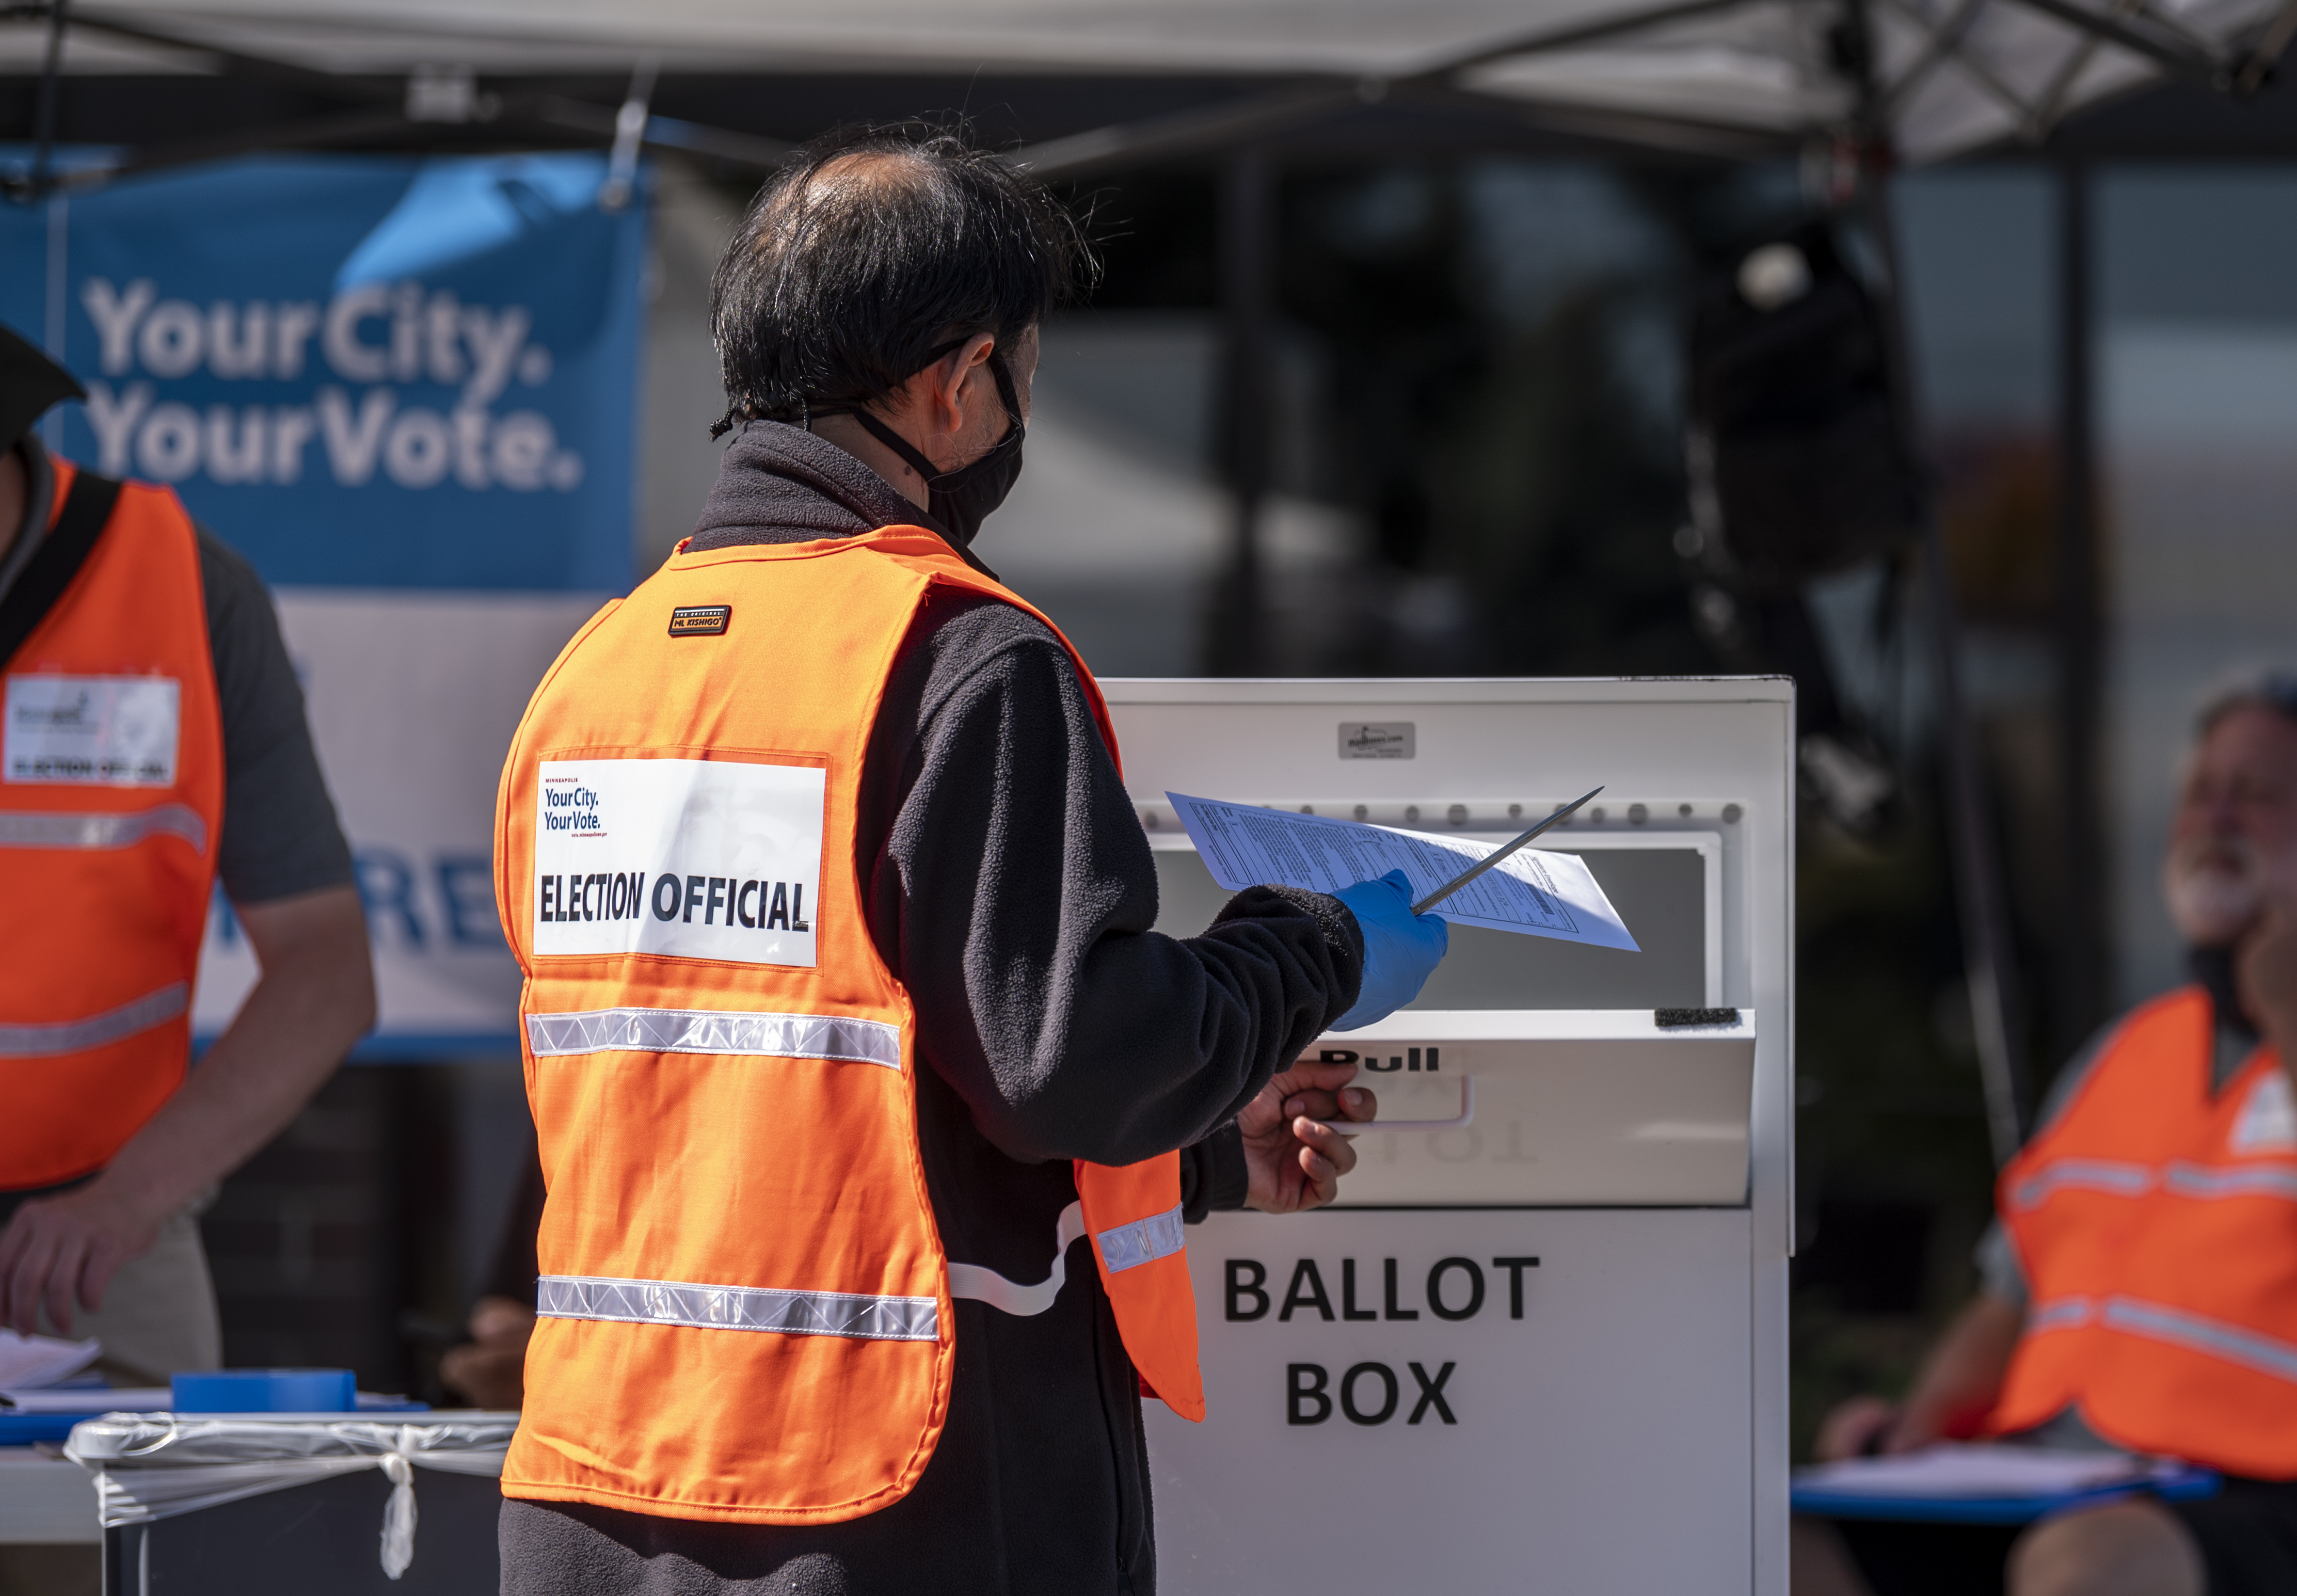 An election judge drops a ballot in a ballot box at a drive through drop-off for absentee ballots on August 11, 2020 in Minneapolis, Minnesota. (Stephen Maturen/Getty Images)